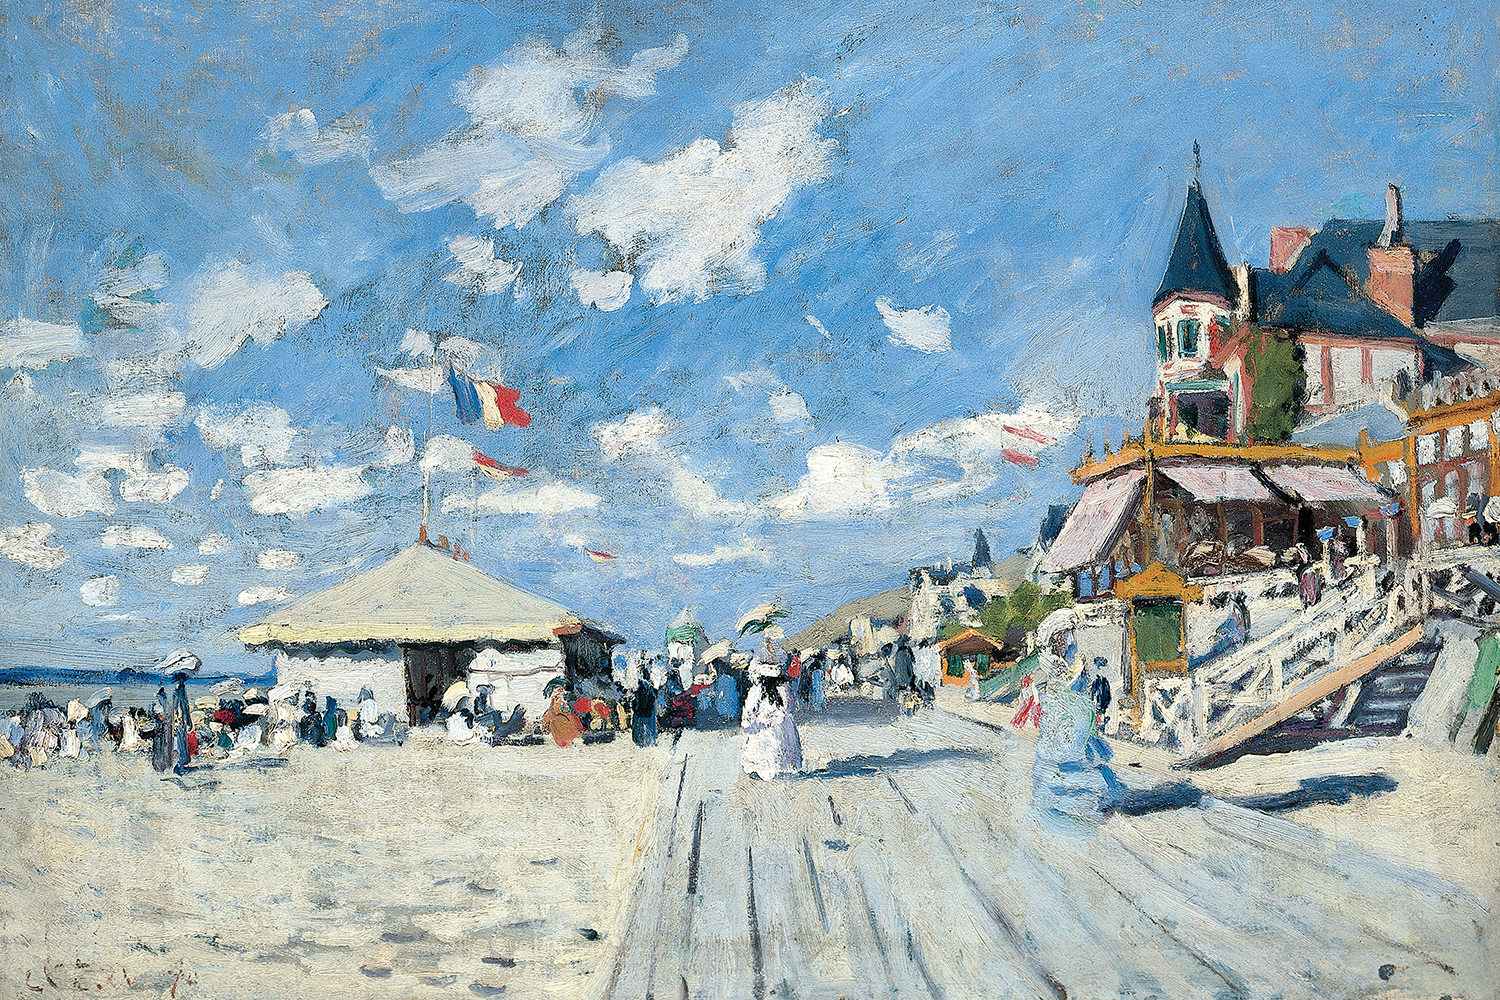 boardwalk along the beach showing tents, houses, and passerbys